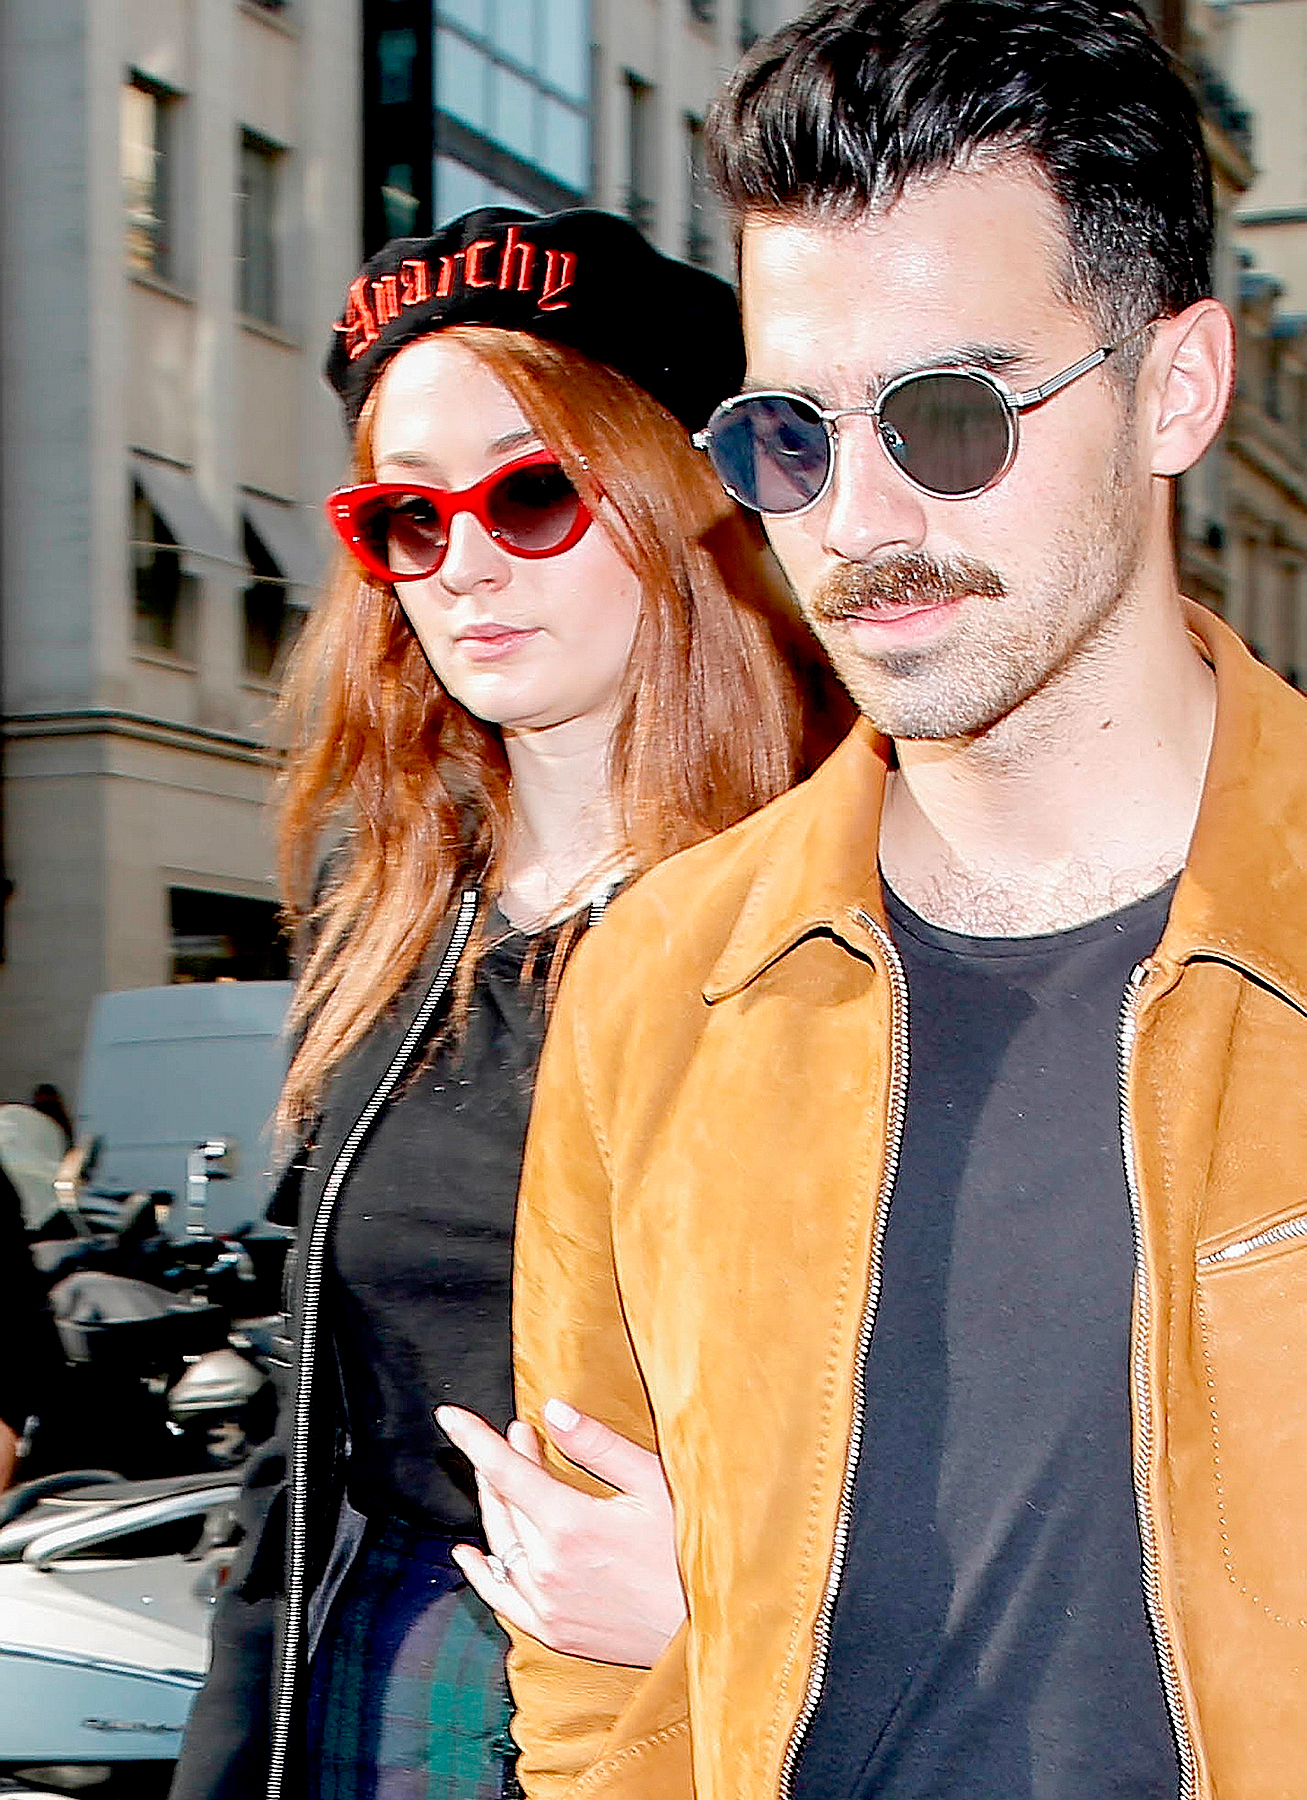 Newly engaged singer Joe Jonas and Game of Thrones' star Sophie Turner enjoying a shopping day in Paris on October 17, 2017.